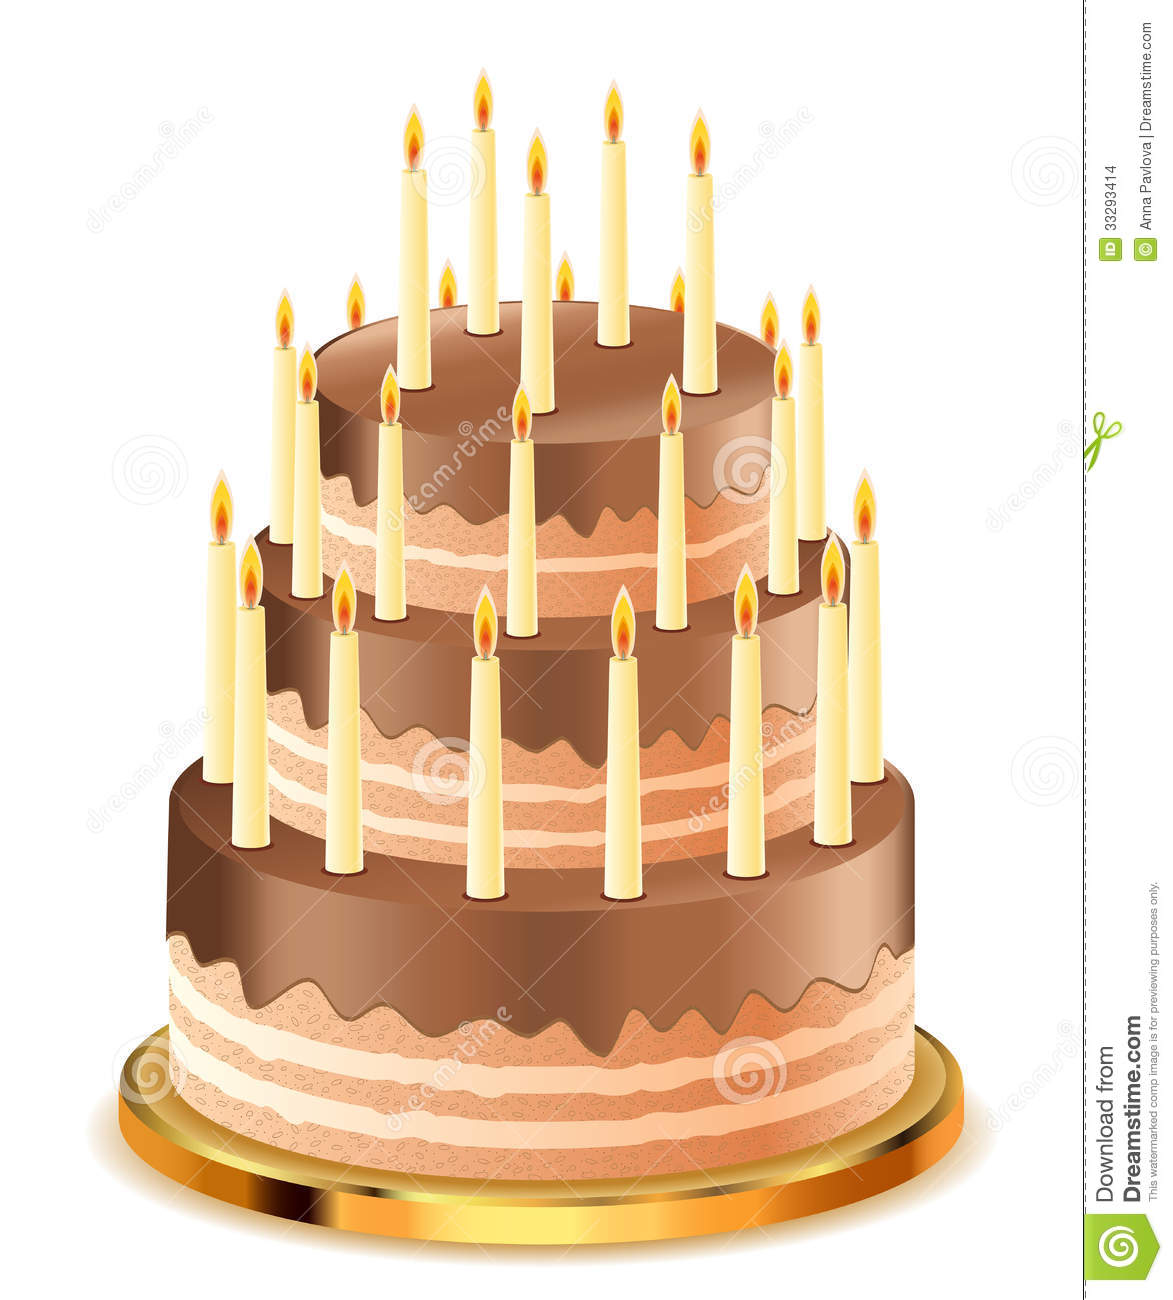 Chocolate Cake Images With Candles : Chocolate Cake With Candles Stock Images - Image: 33293414